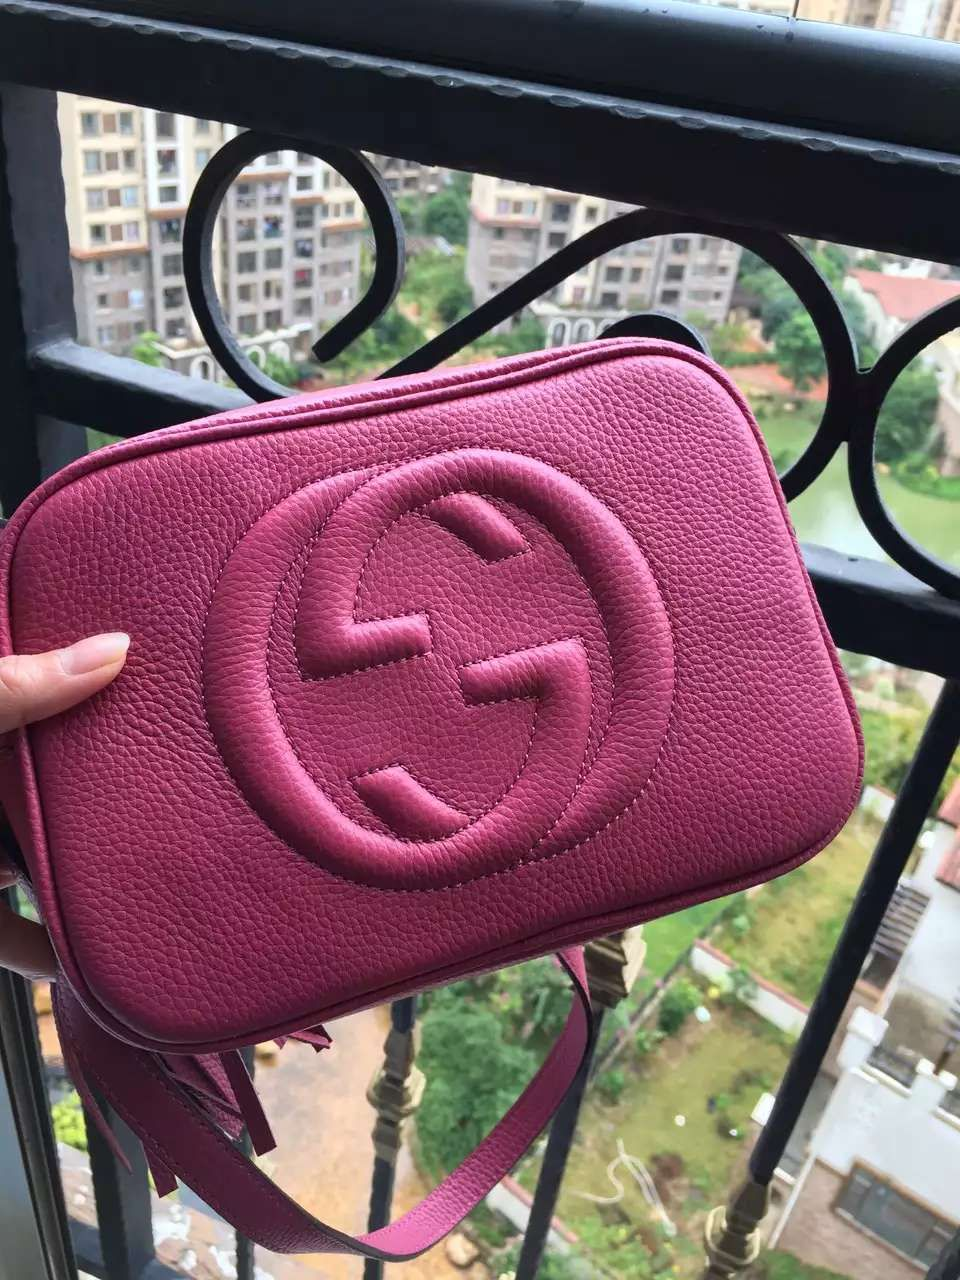 gucci Bag, ID : 43070(FORSALE:a@yybags.com), gucci shoes online shopping, gucci cheap backpacks for girls, buy gucci handbag, gucci cheap purses, gucci where can i buy a briefcase, gucci online outlet store, gucci personalized backpacks, gucci bags, gucci com usa sale, gucci bags official website, gucci designer purse brands #gucciBag #gucci #gucci #sho